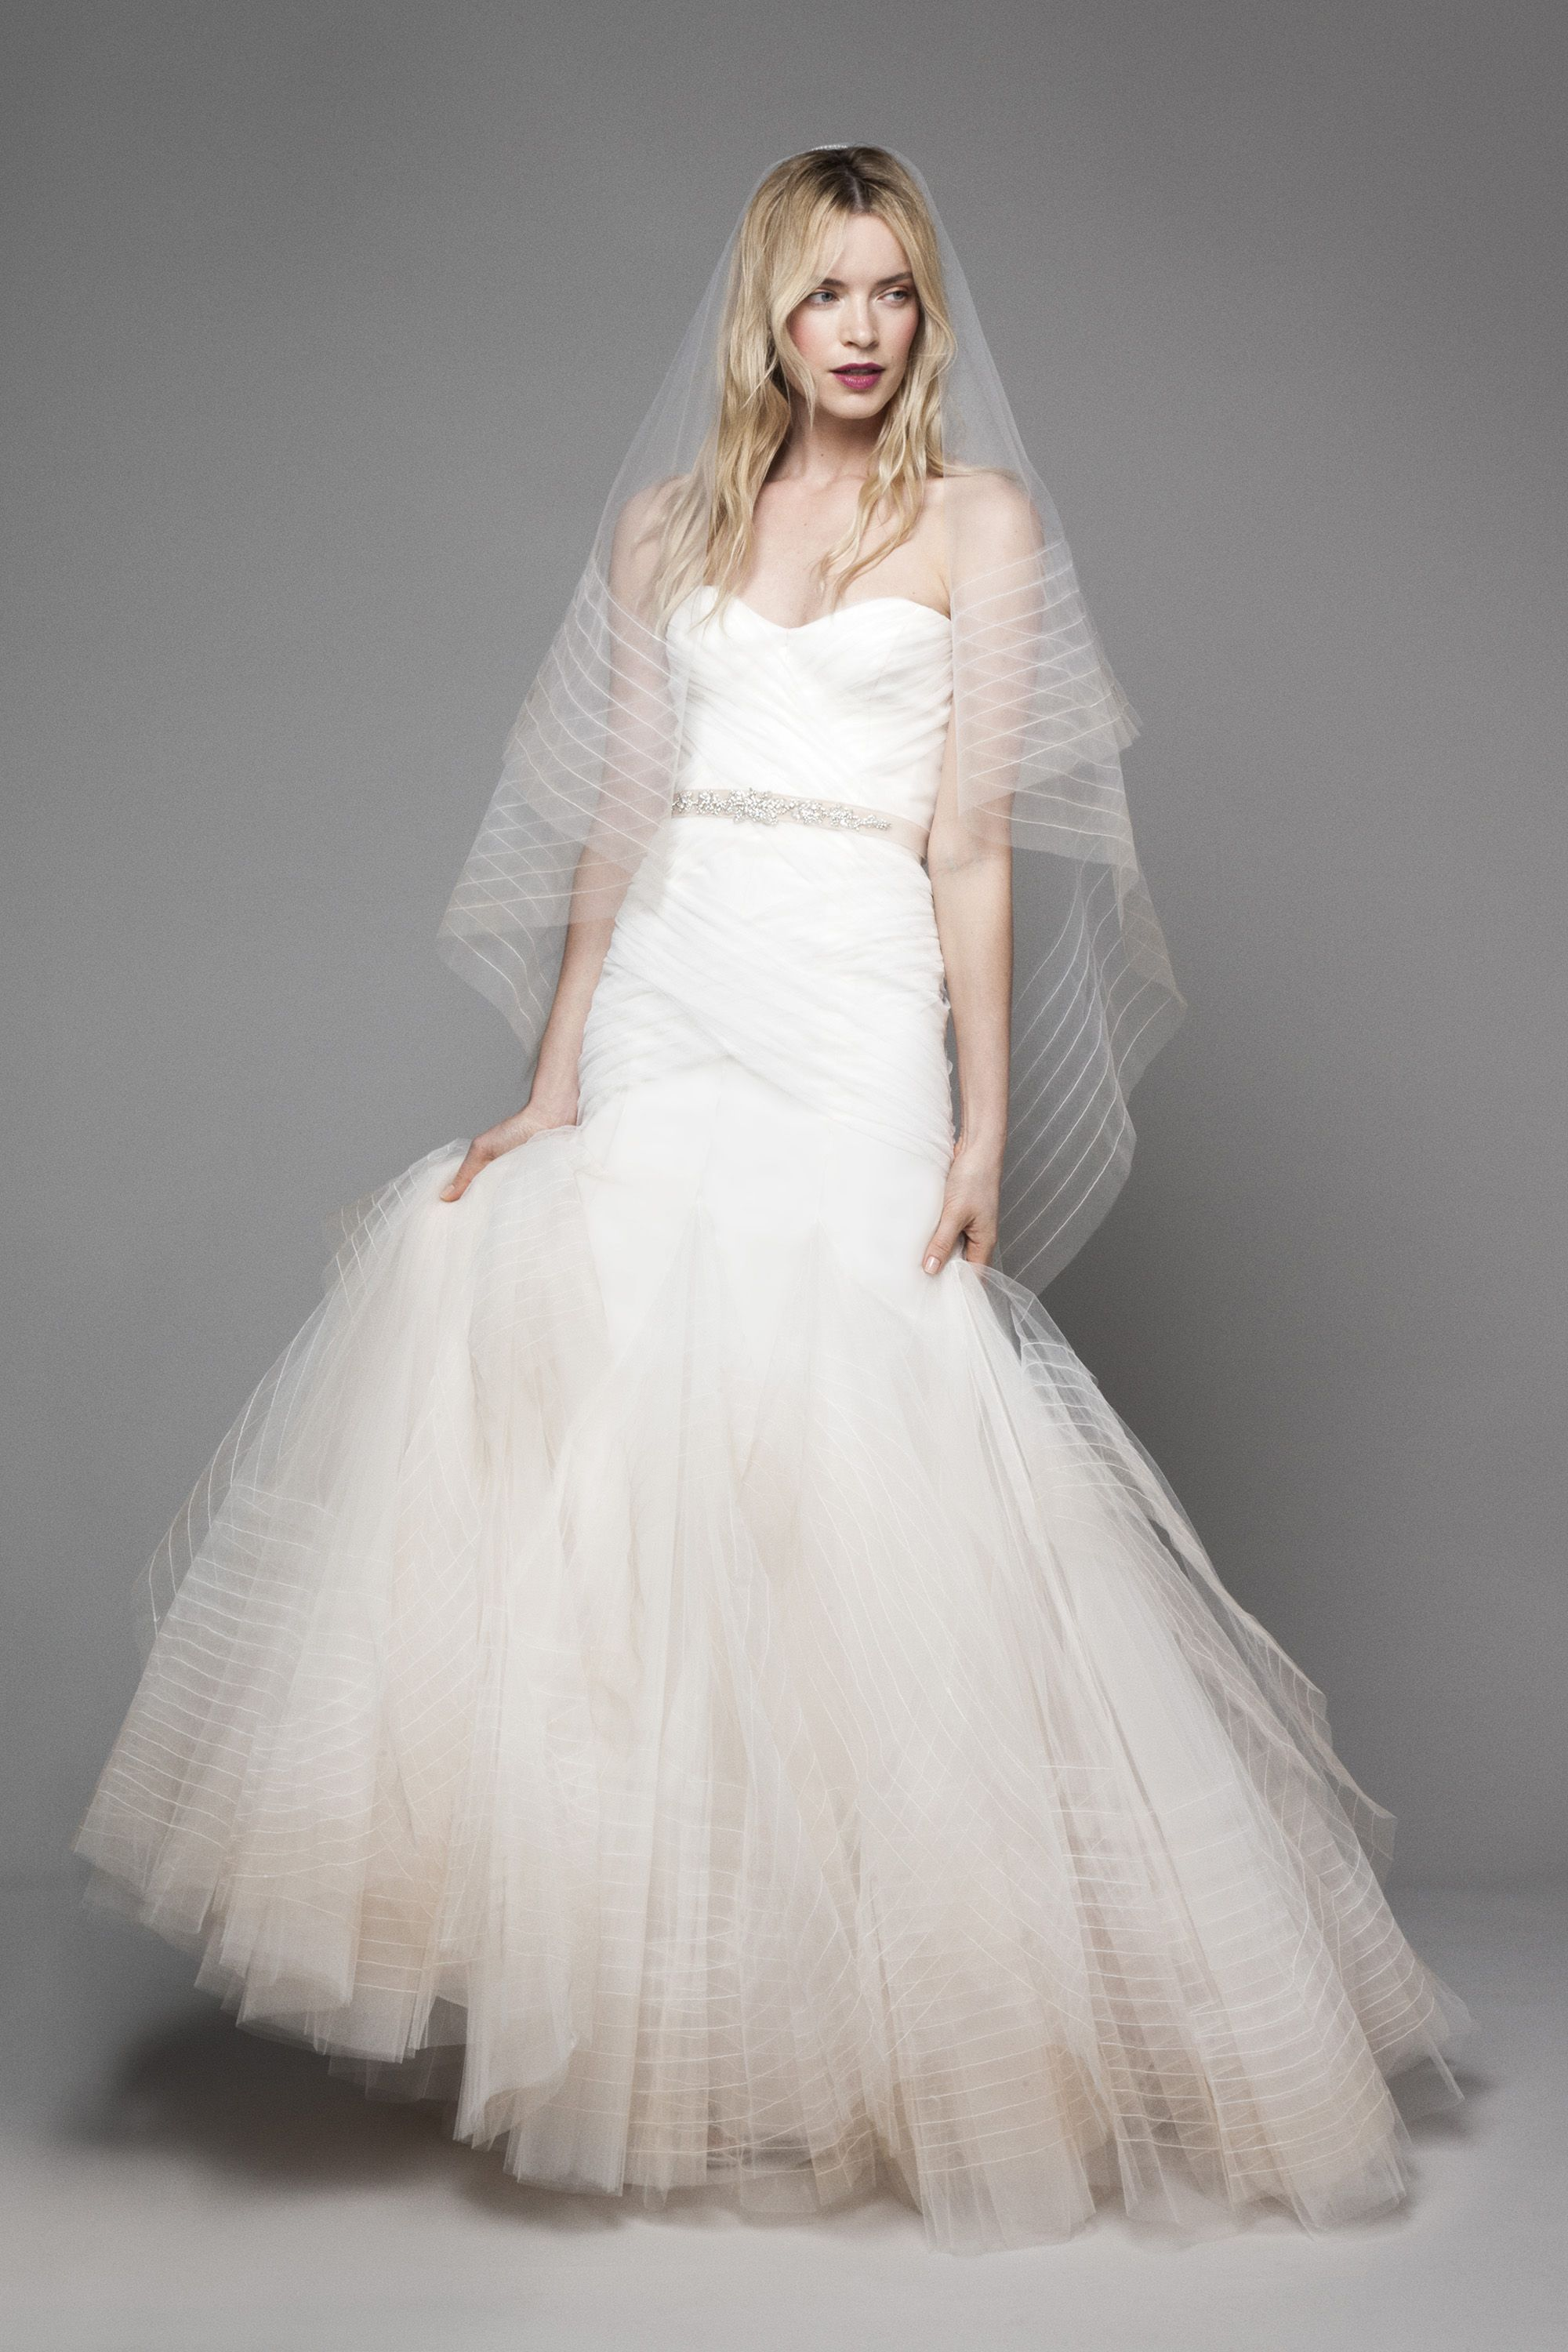 Wedding dresses kleinfeld  Fit And Flare Wedding Dress on Kleinfeld Bridal  A striking Fit and